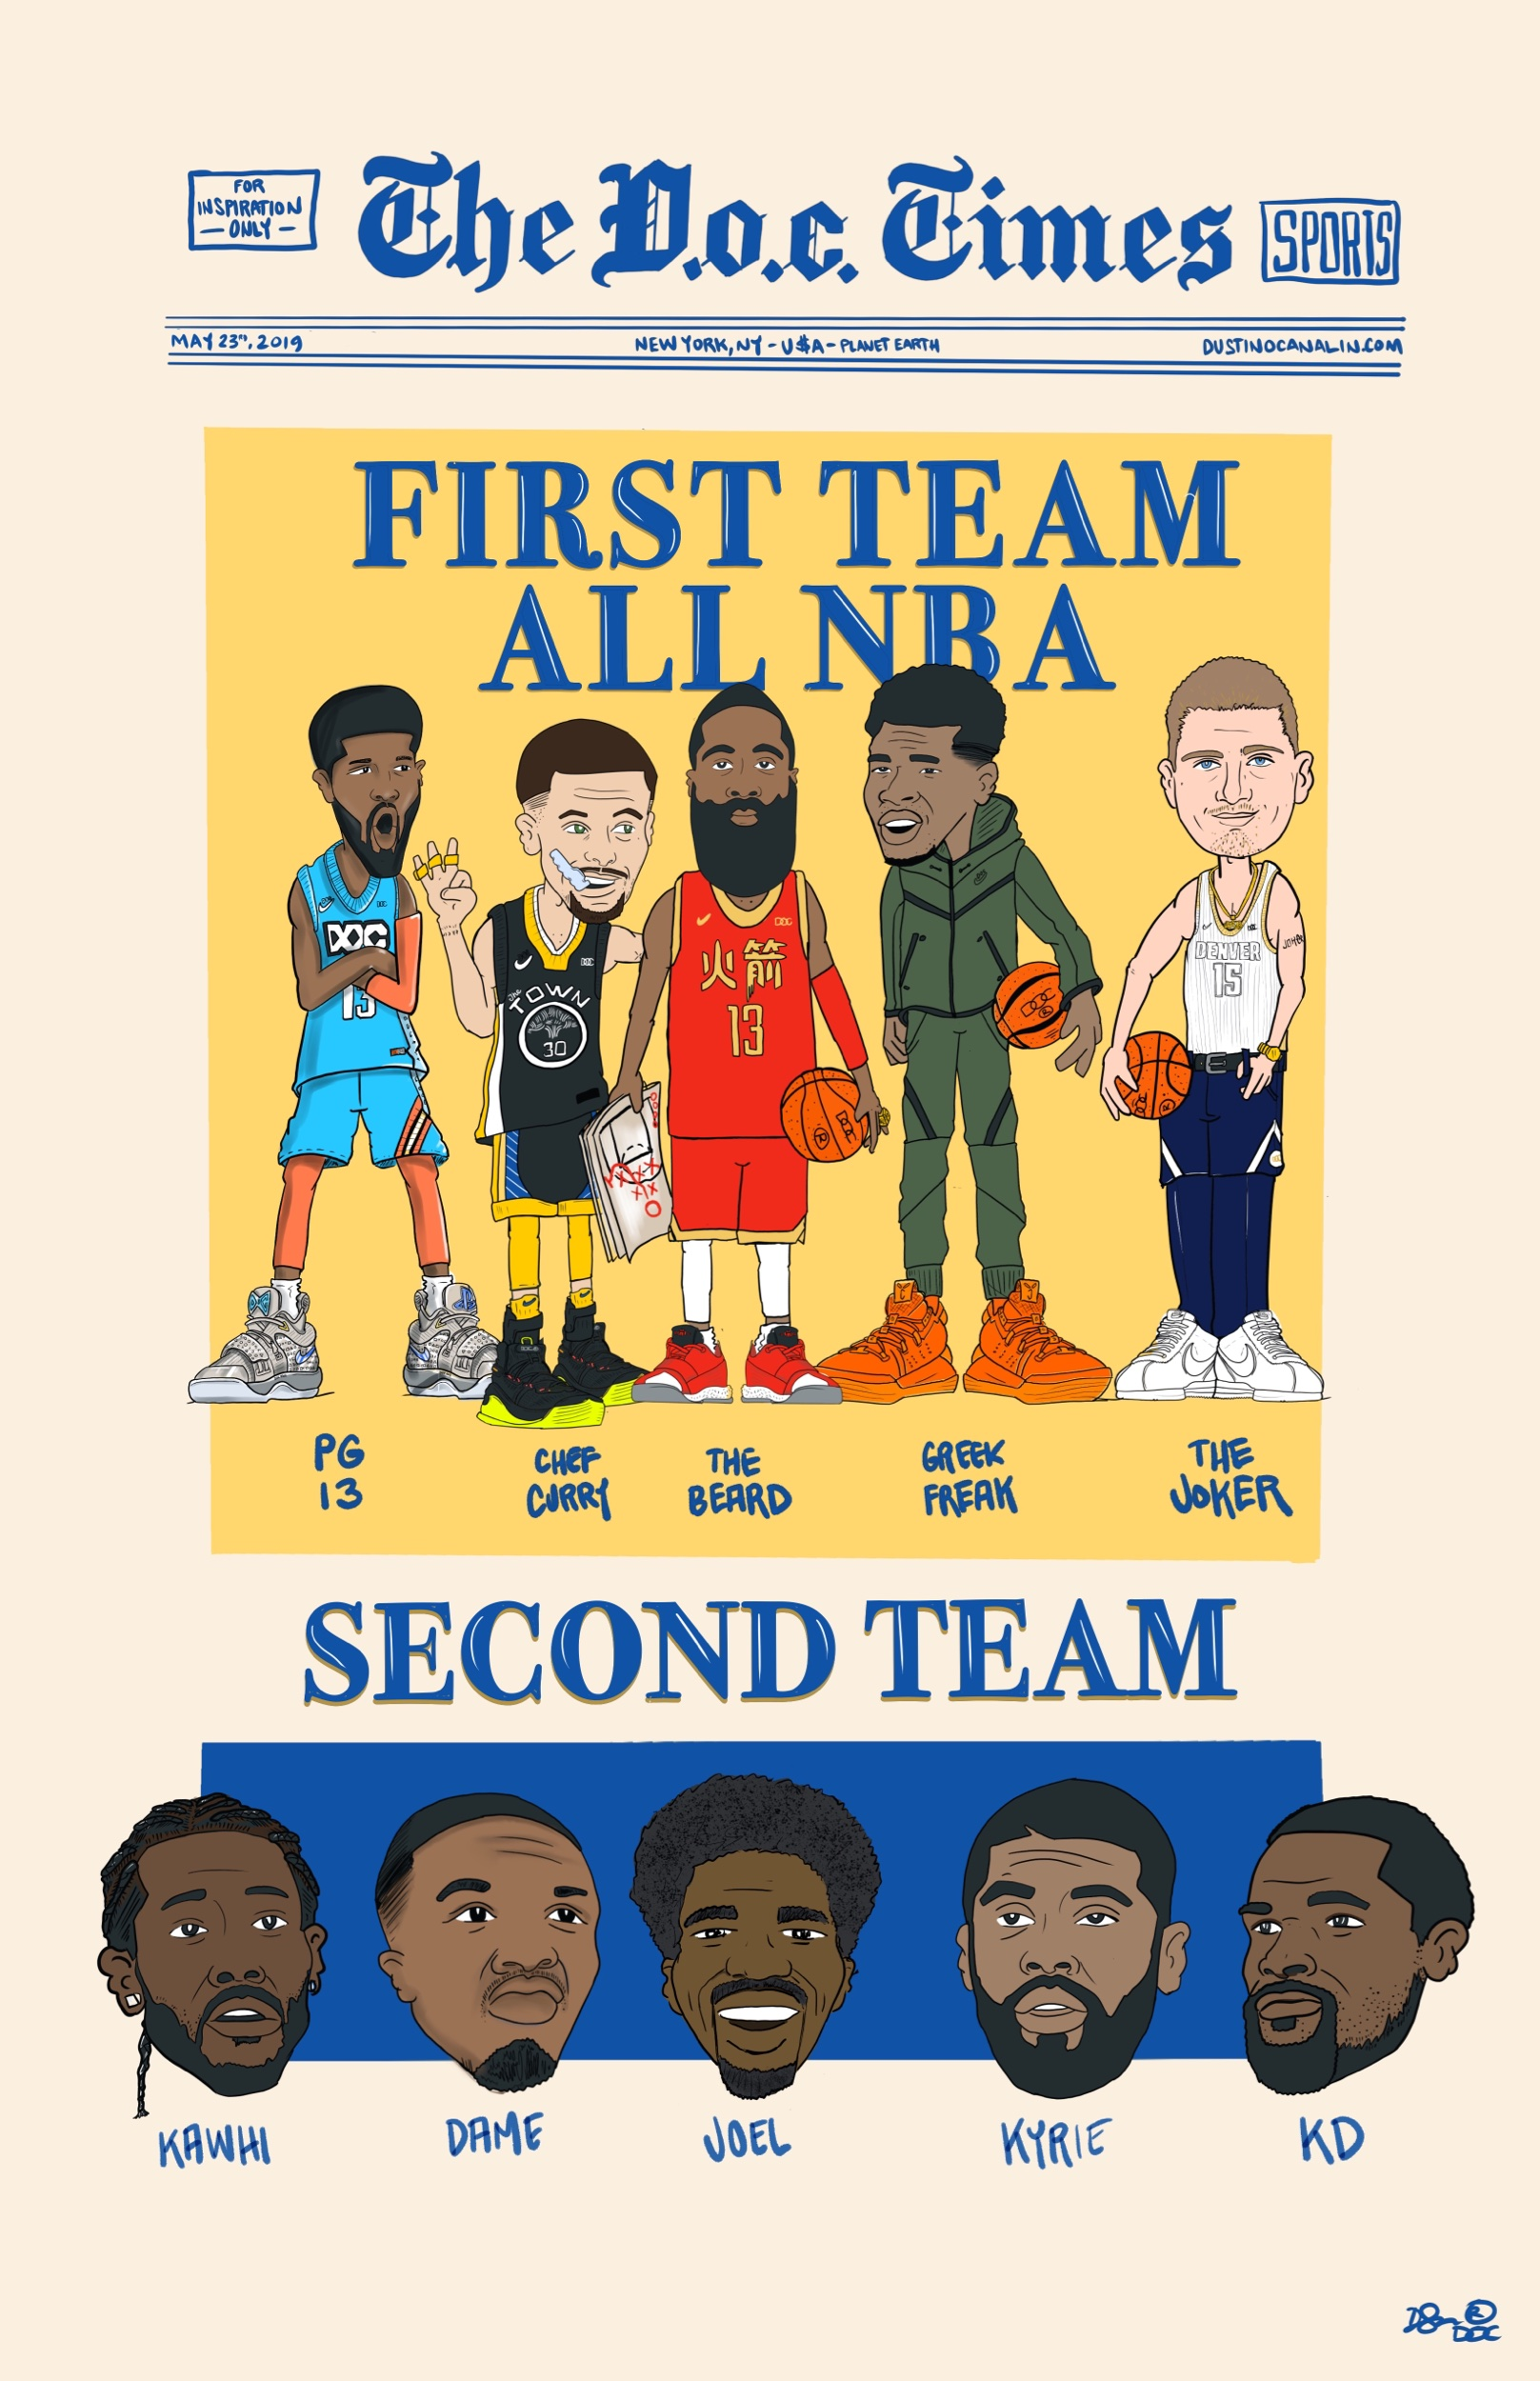 The All NBA Teams were announced and missing for the first time in a loooong time was Lebron James.   Milwaukee 's Antetokounmpo and  Oklahoma City 's George were named to the two forward spots on the first team;  Stephen Curry  of  Golden State  joined  Houston 's Harden as the guards; and  Denver Nuggets  center  Nikola Jokic  rounded out the first team.  The second team consists of  Damian Lillard  and  Kyrie Irving  at guard,  Kevin Durant  and  Kawhi Leonard  at forward and  Joel Embiid  at center.  Joining James on the third team are  Russell Westbrook  and  Kemba Walker  at guard,  Blake Griffin  at forward and  Rudy Gobert  at center.